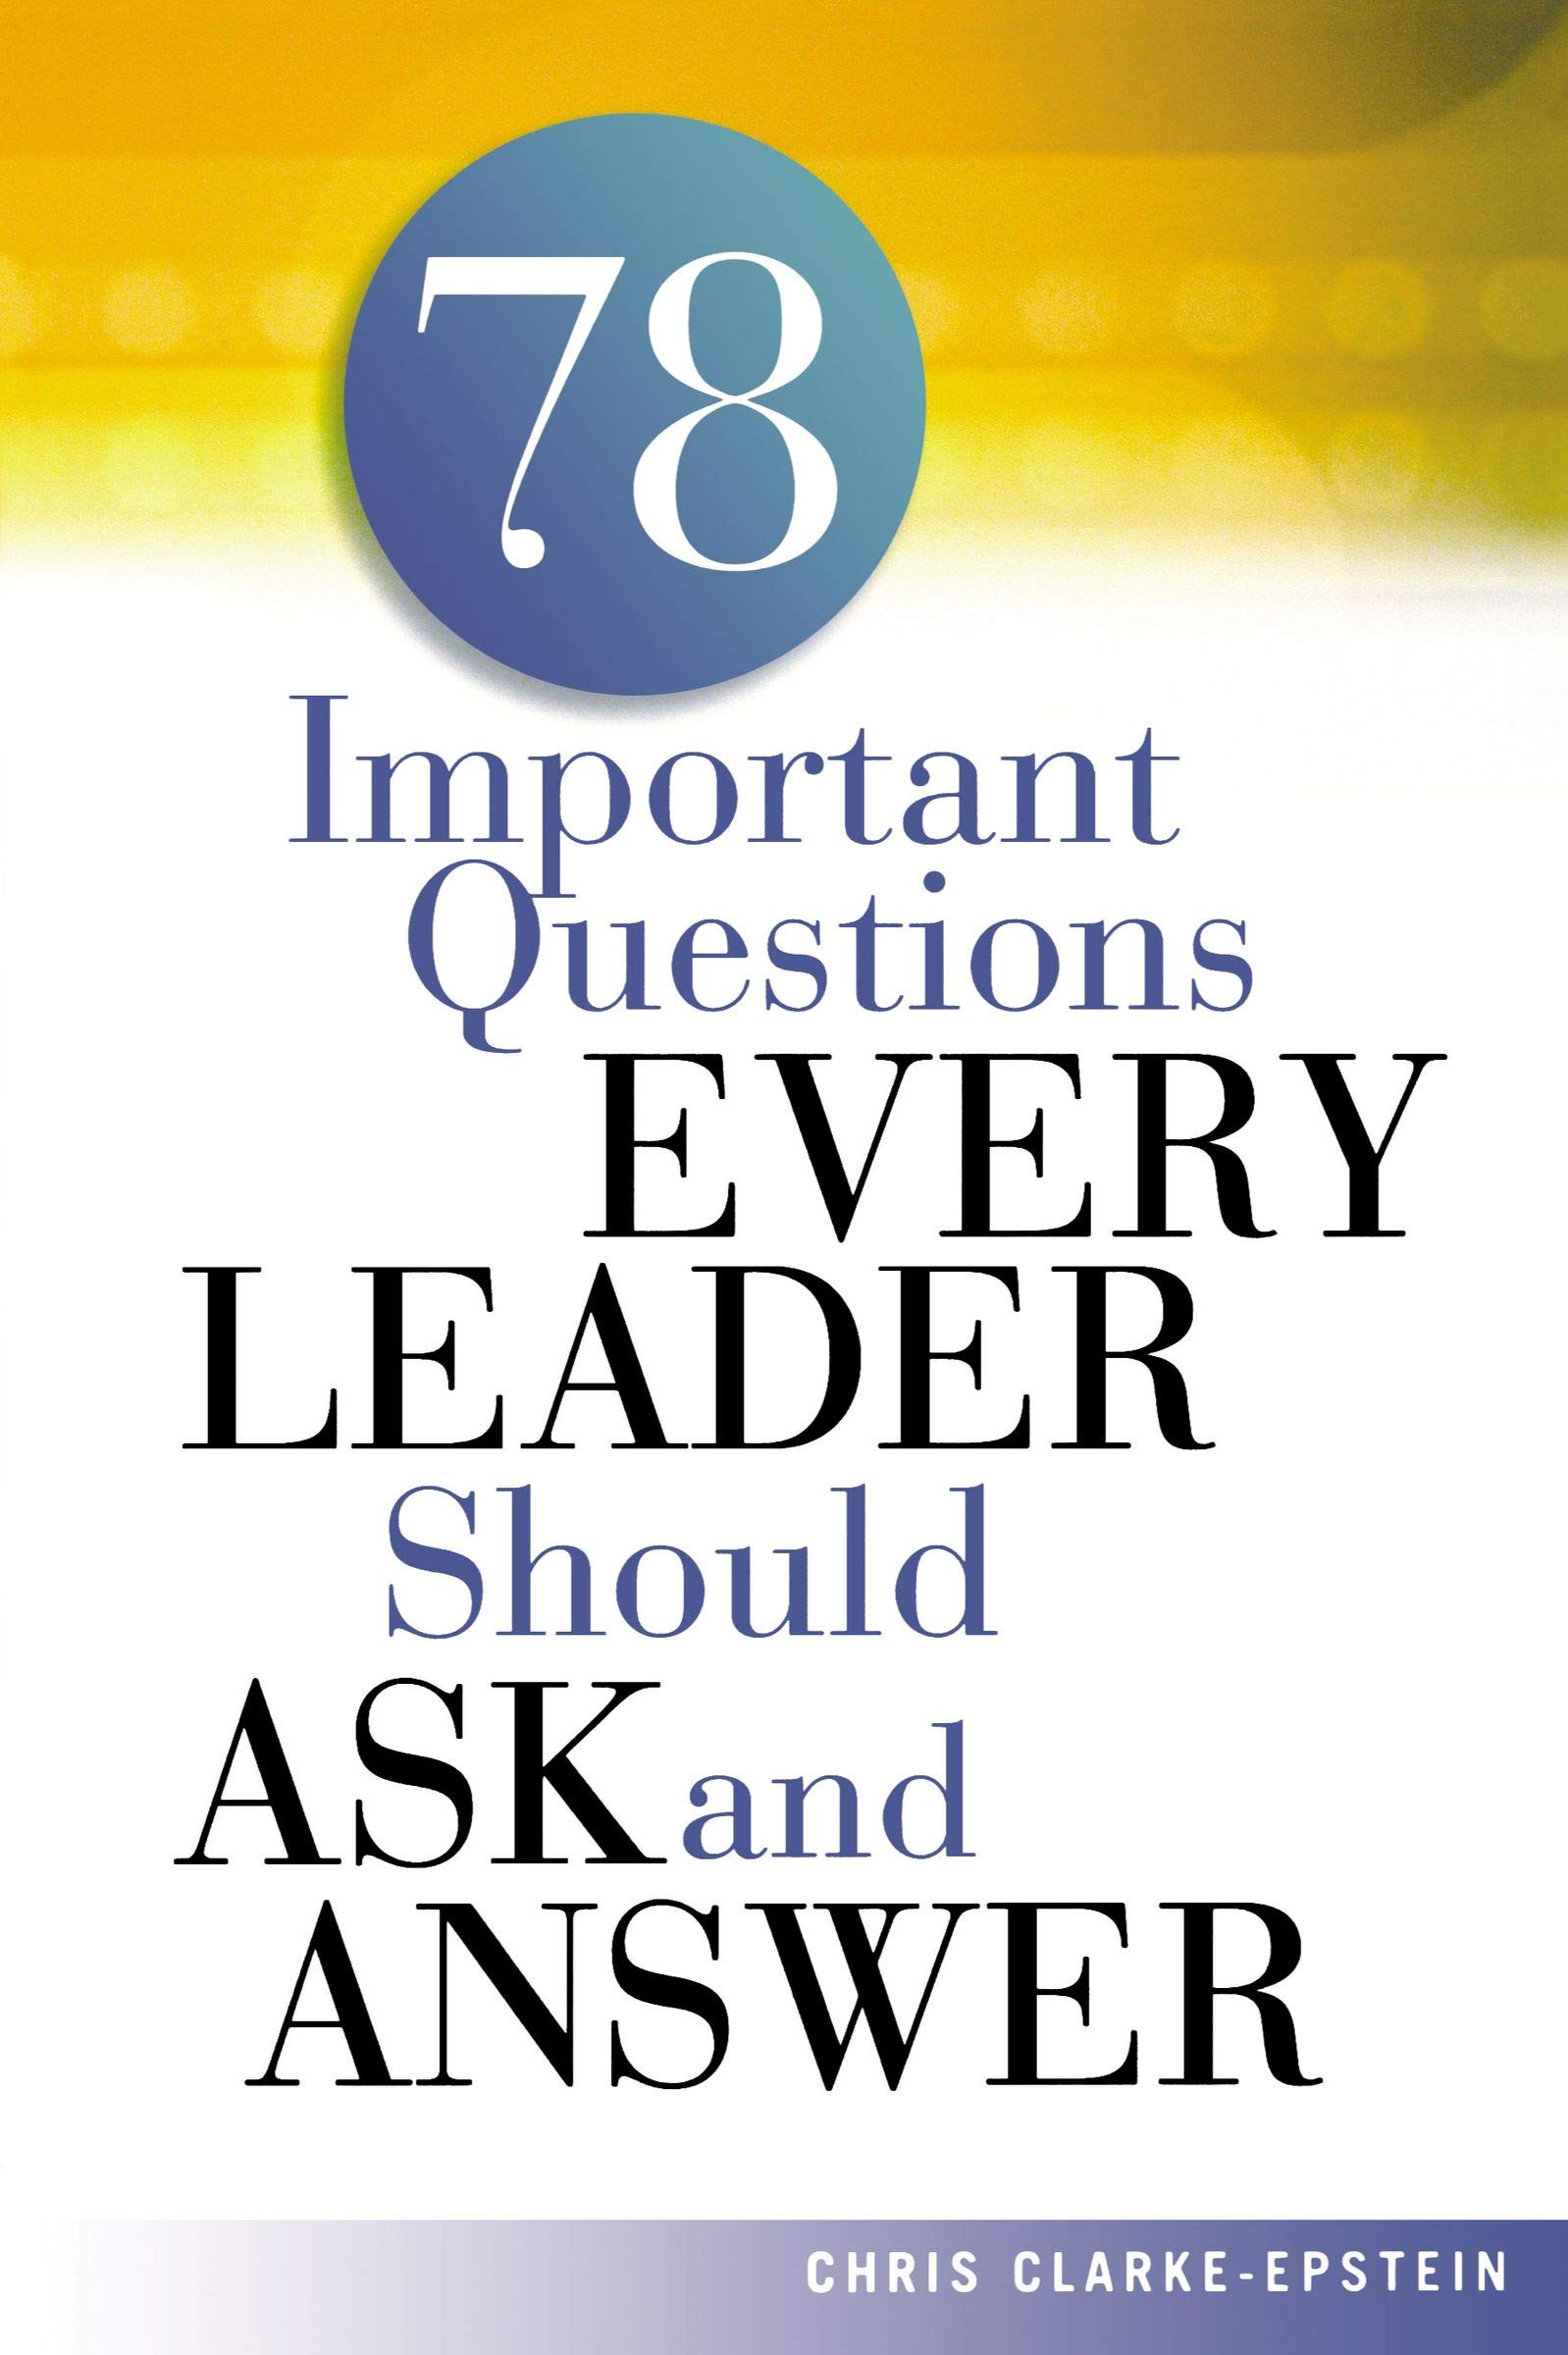 A 40 Important Questions Every Leader Should Ask and Answer ...